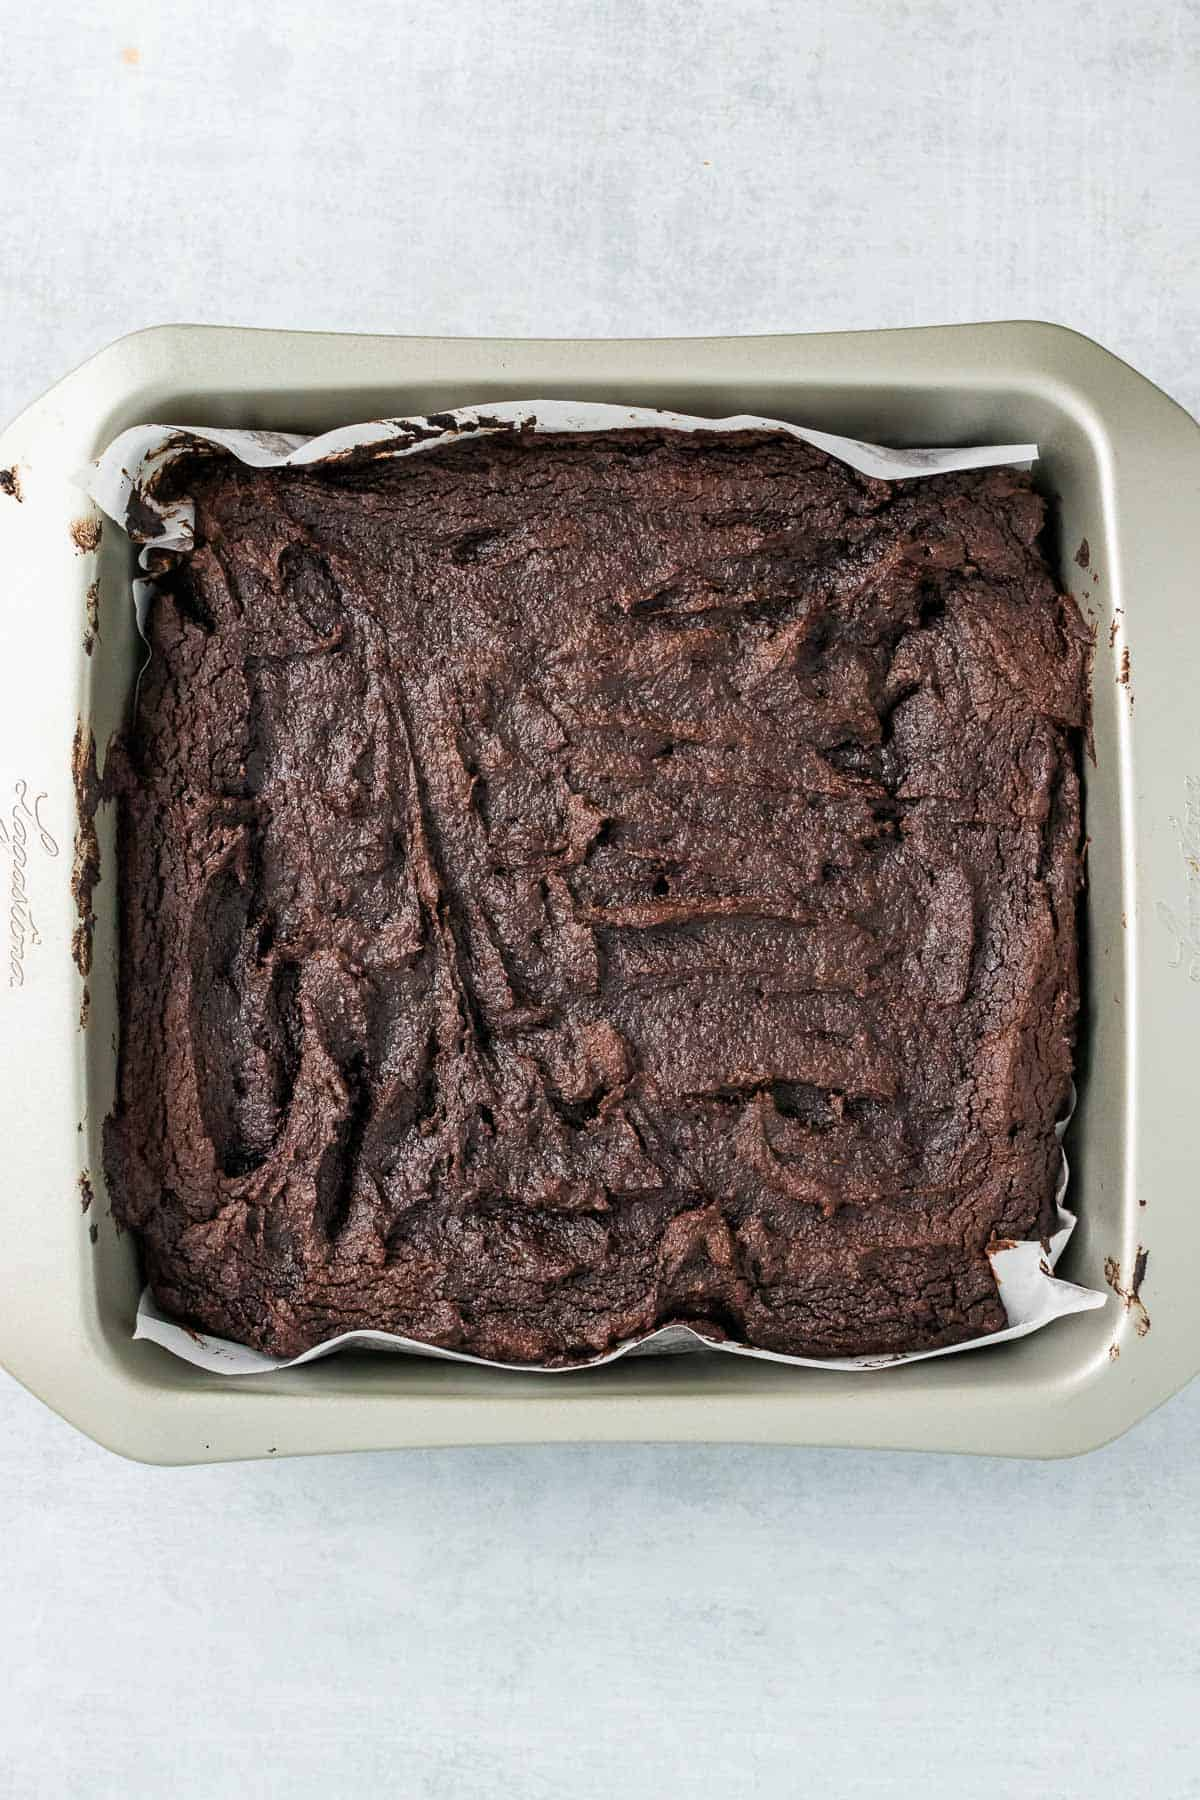 Finished brownies in the baking tin as they cool